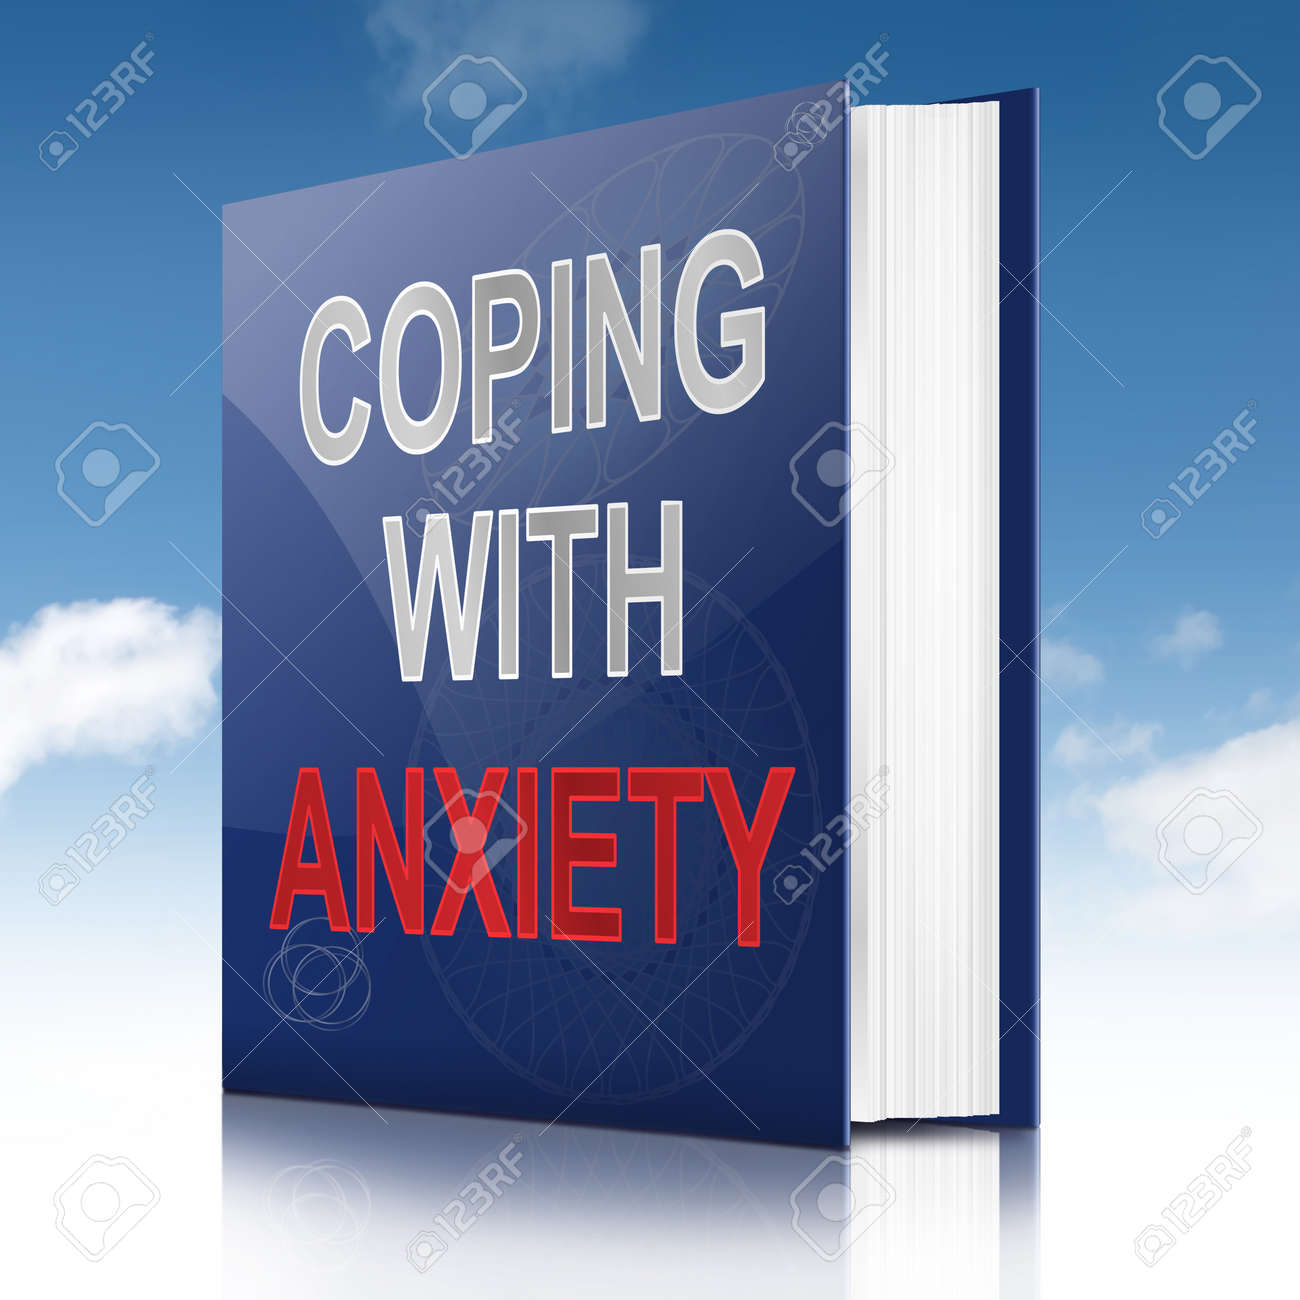 Illustration depicting a book with an anxiety concept title. Sky background. Stock Photo - 17278239